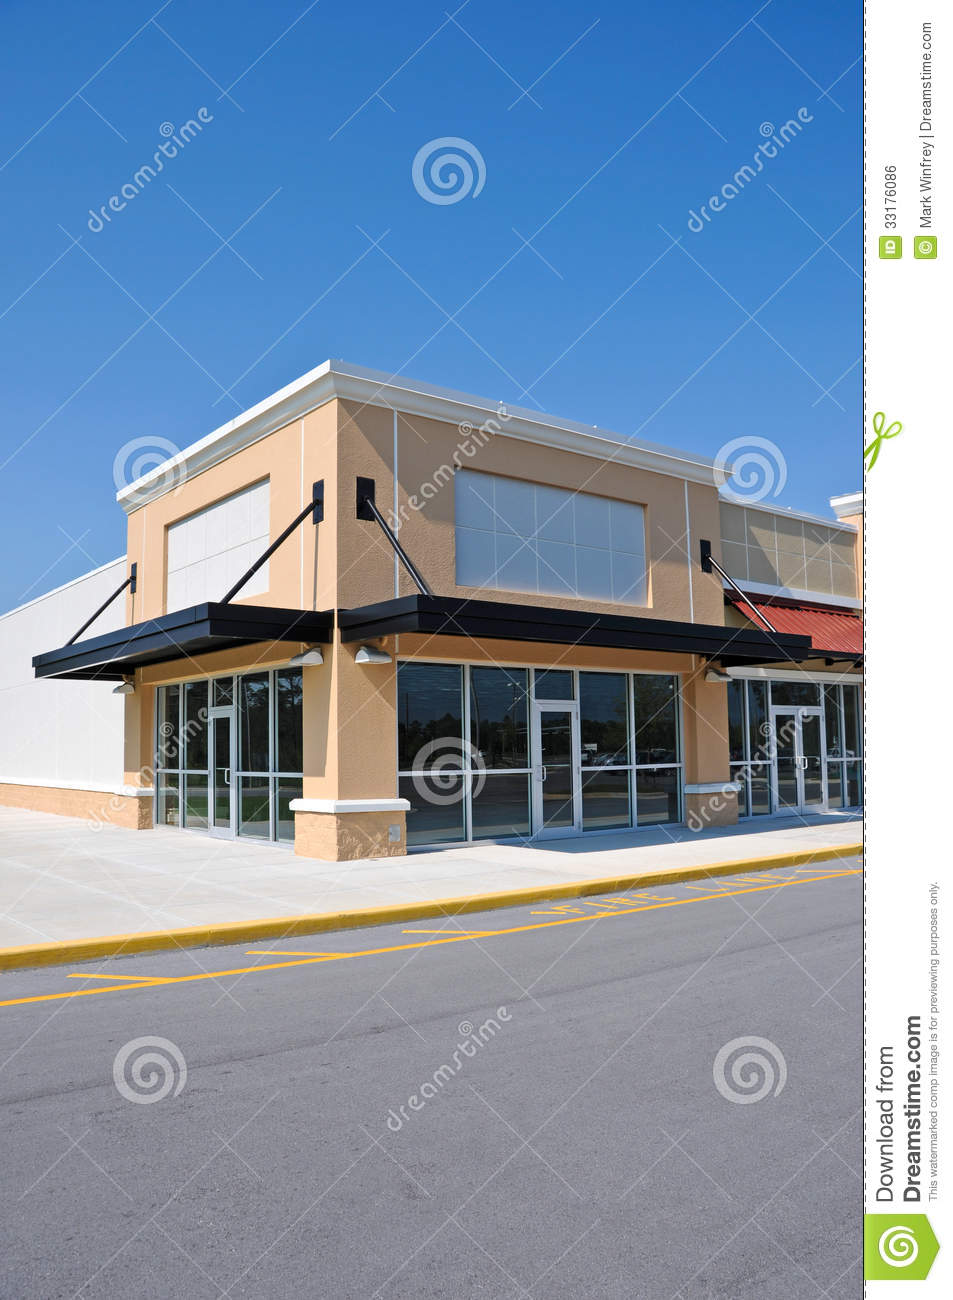 Modern commercial building royalty free stock image for Modern industrial building design